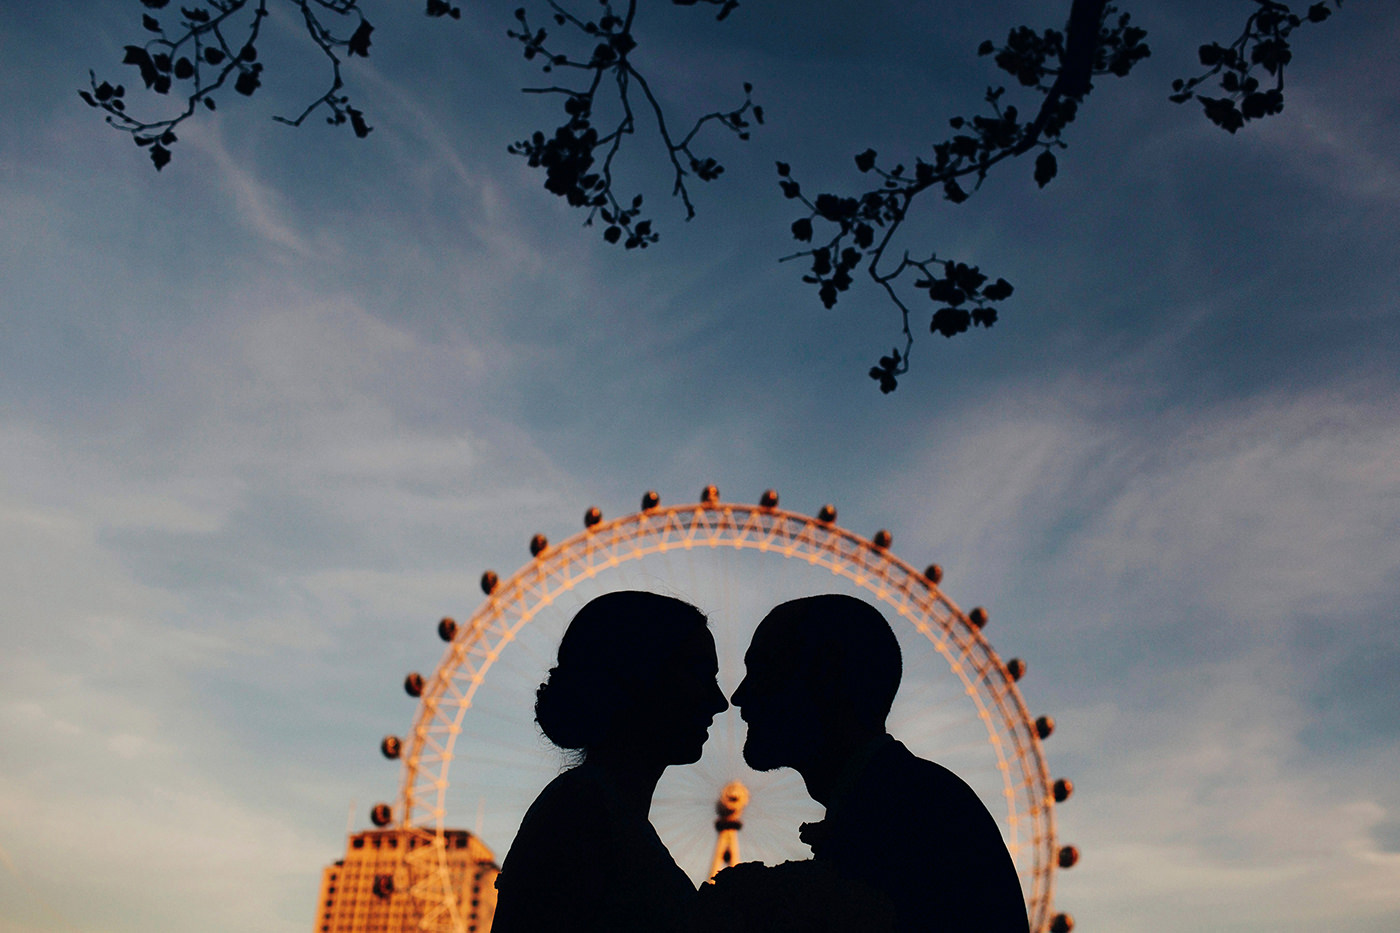 Silhouette wedding photo with ferris wheel